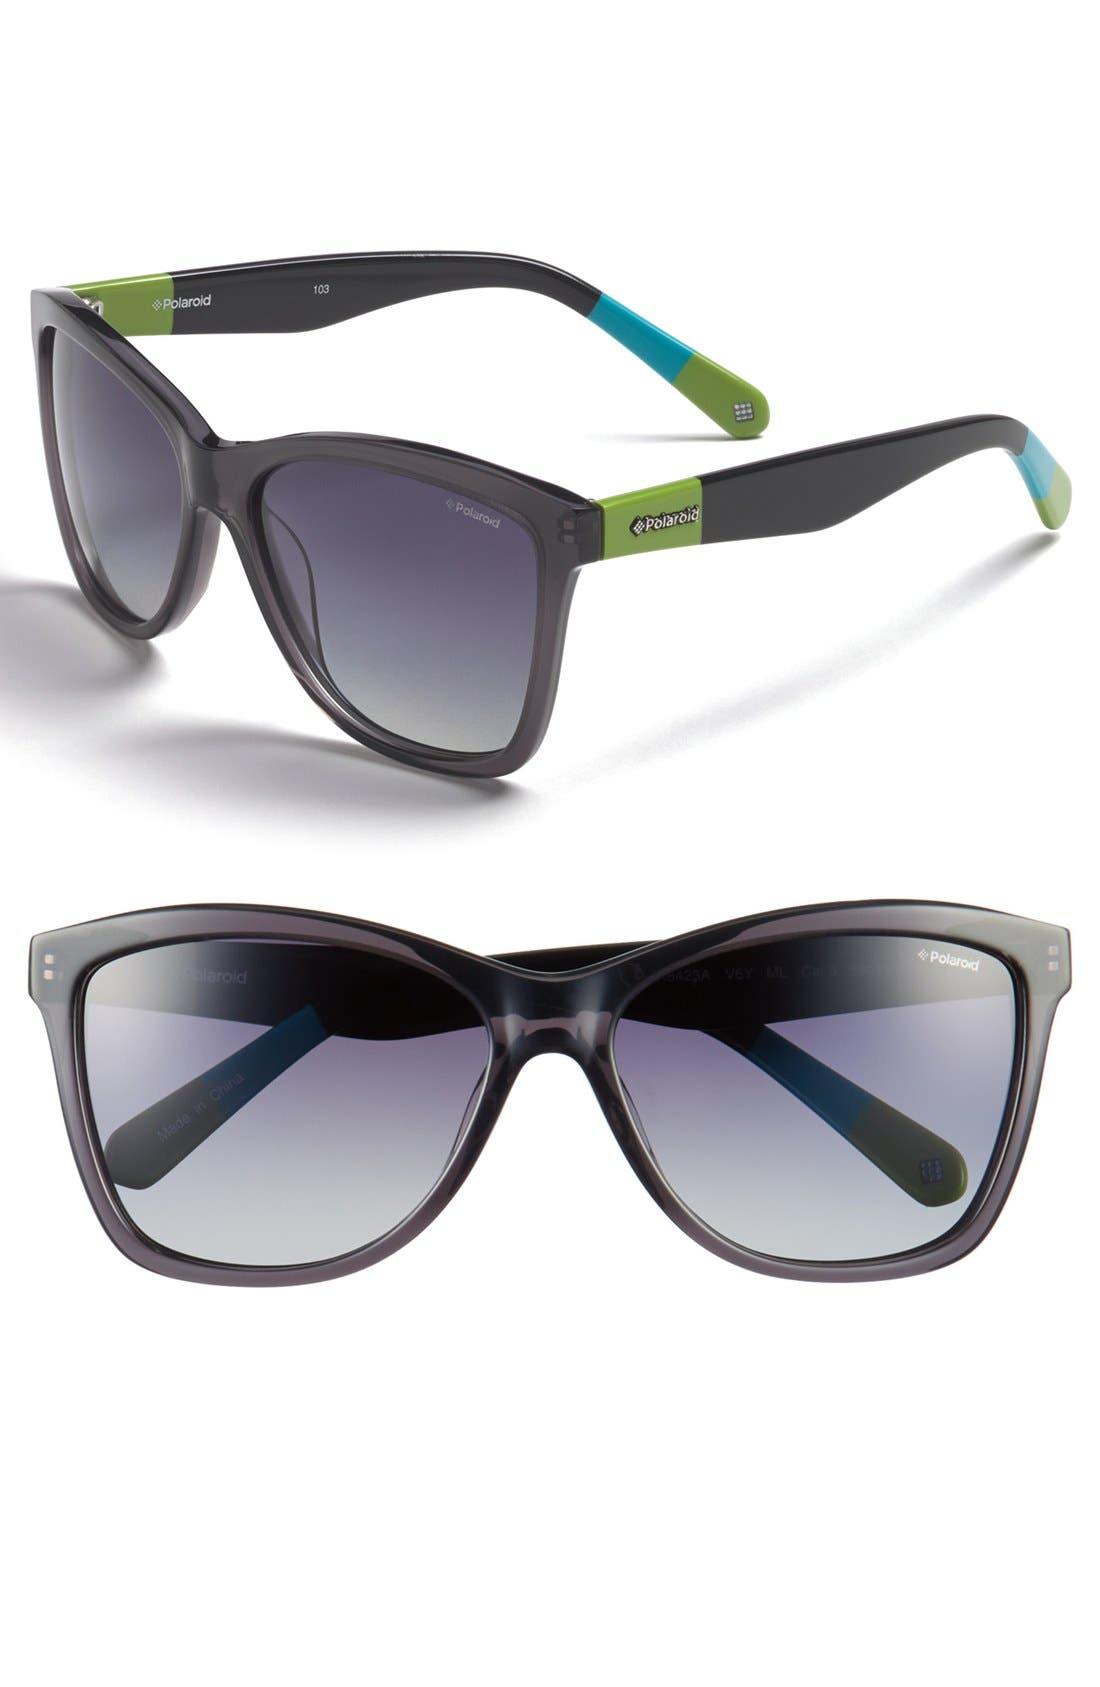 Main Image - Polaroid Eyewear Polarized 59mm Sunglasses